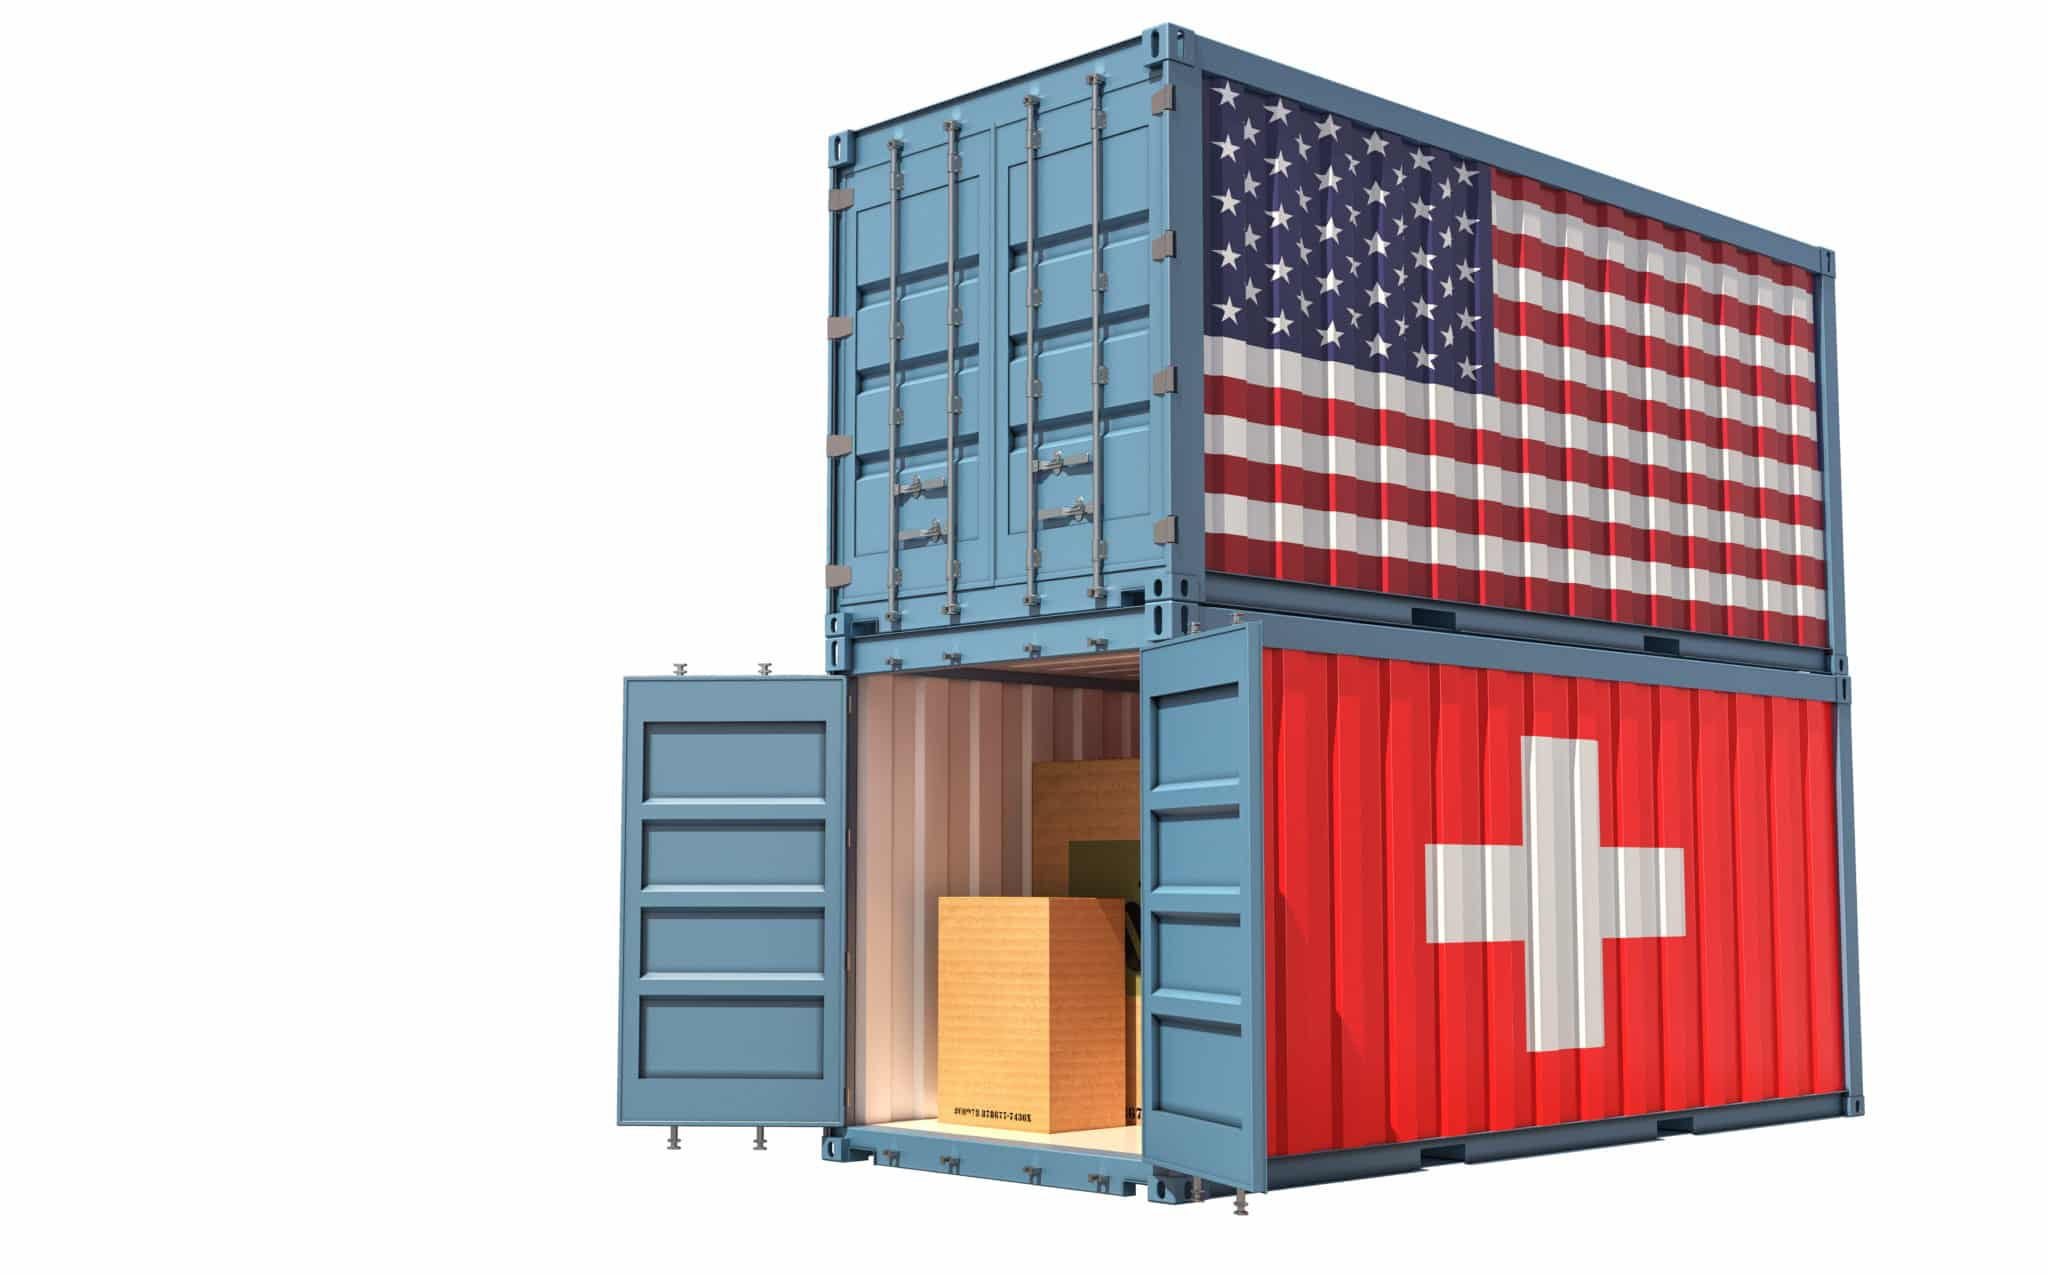 American Lamprecht Swiss-US Transport